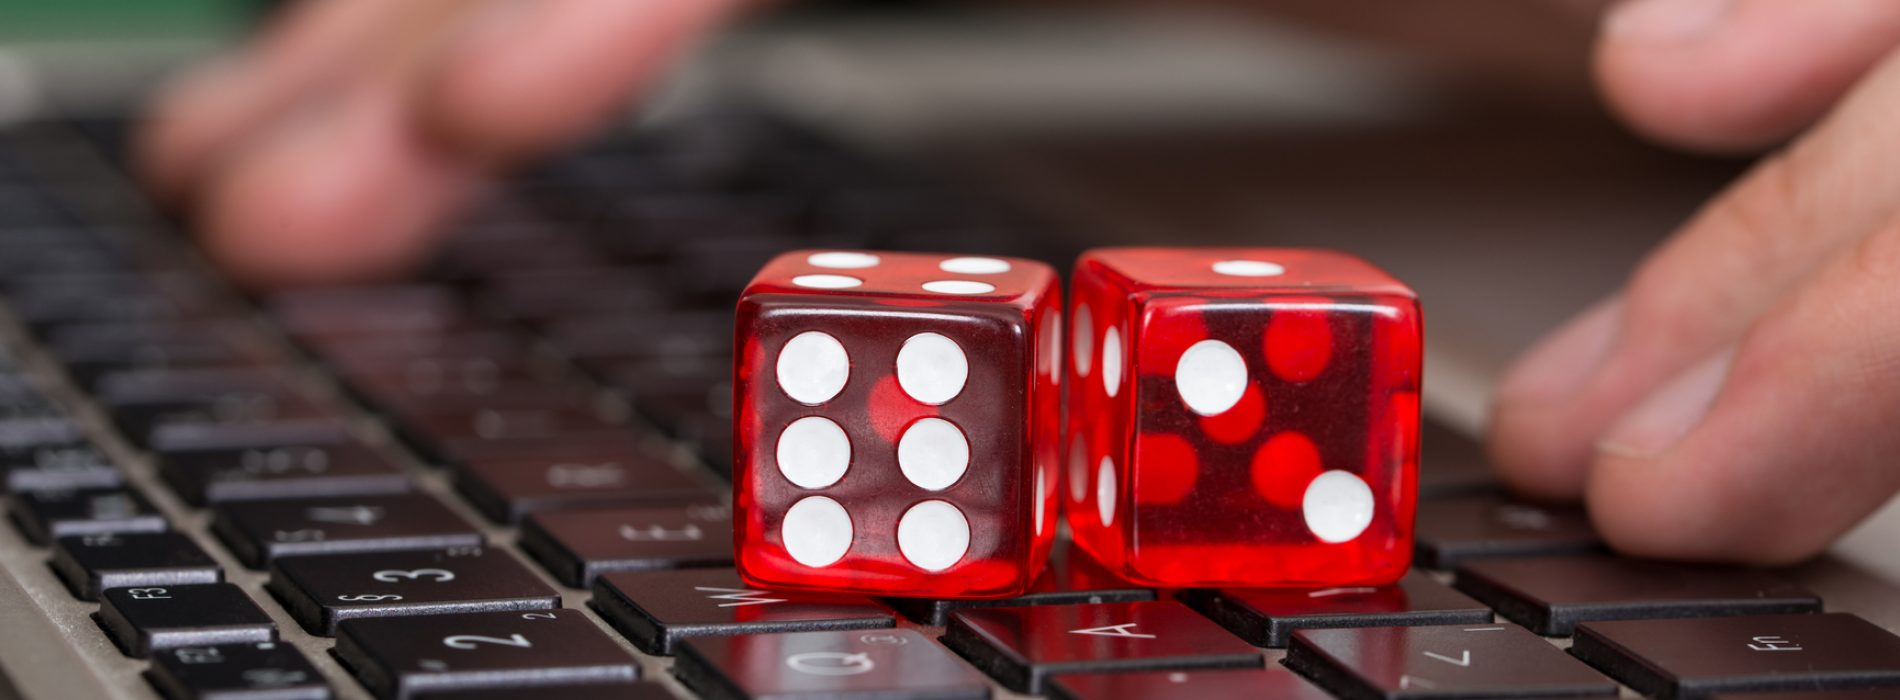 Choosing The Best Online Casino With Important Considerations